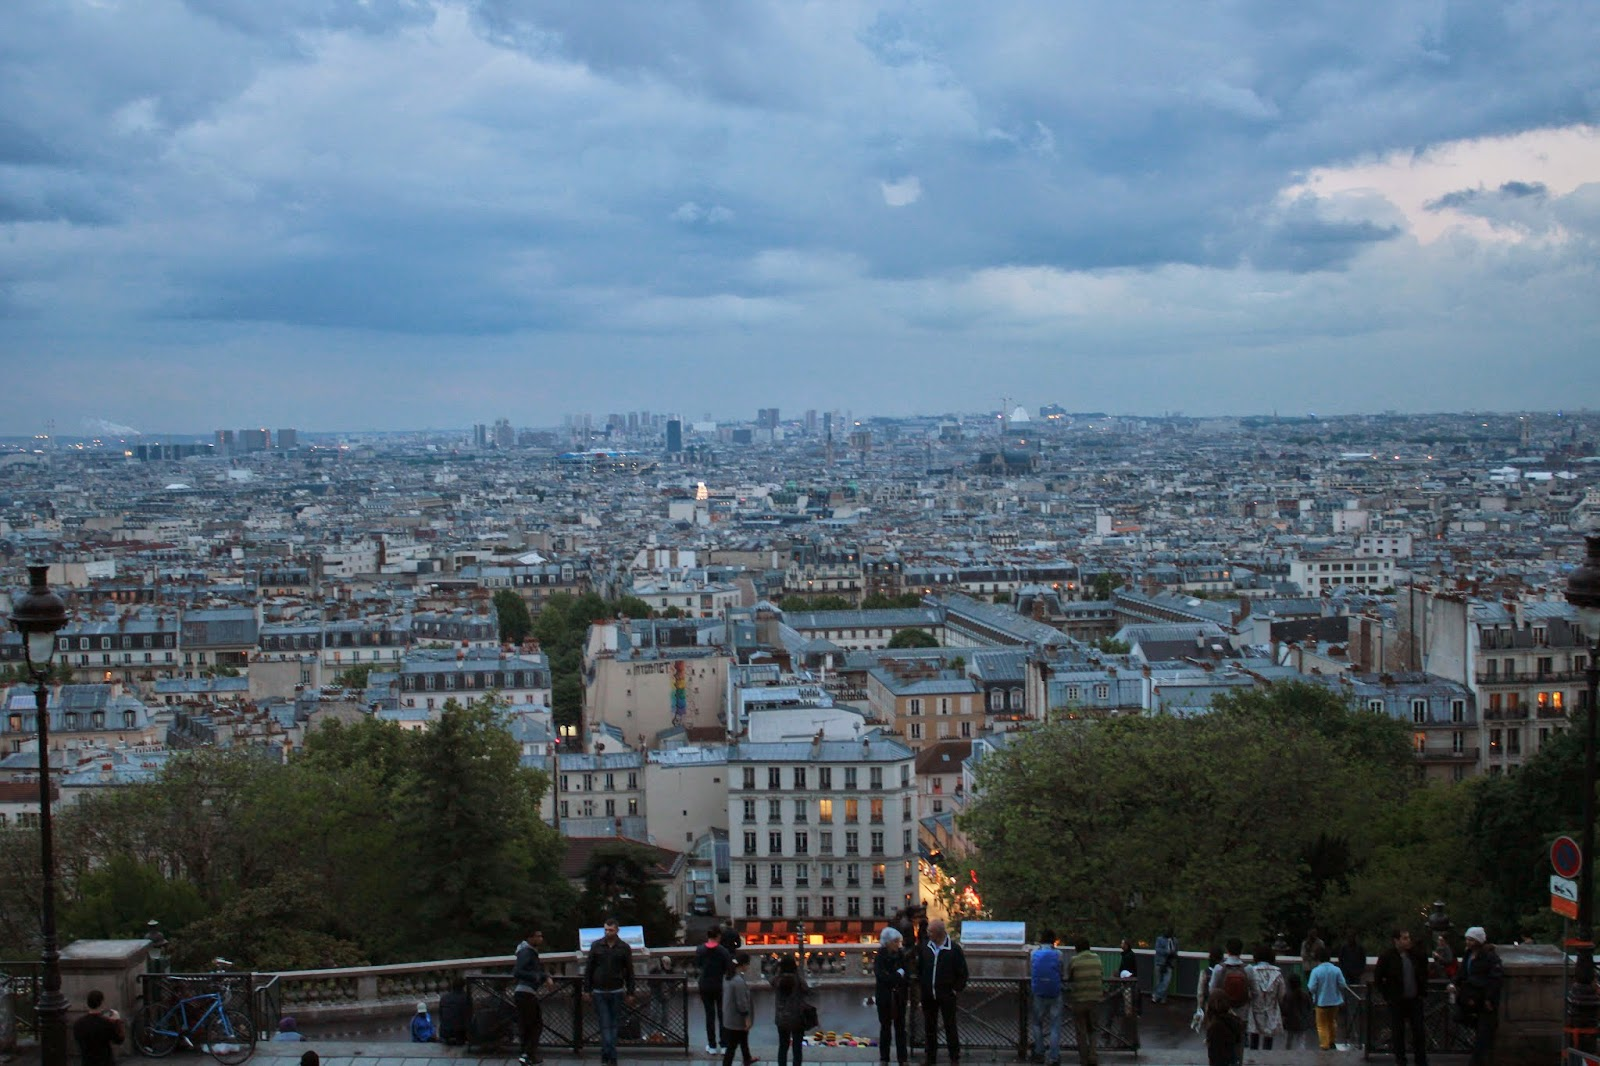 A view of the city of Paris from Montmartre